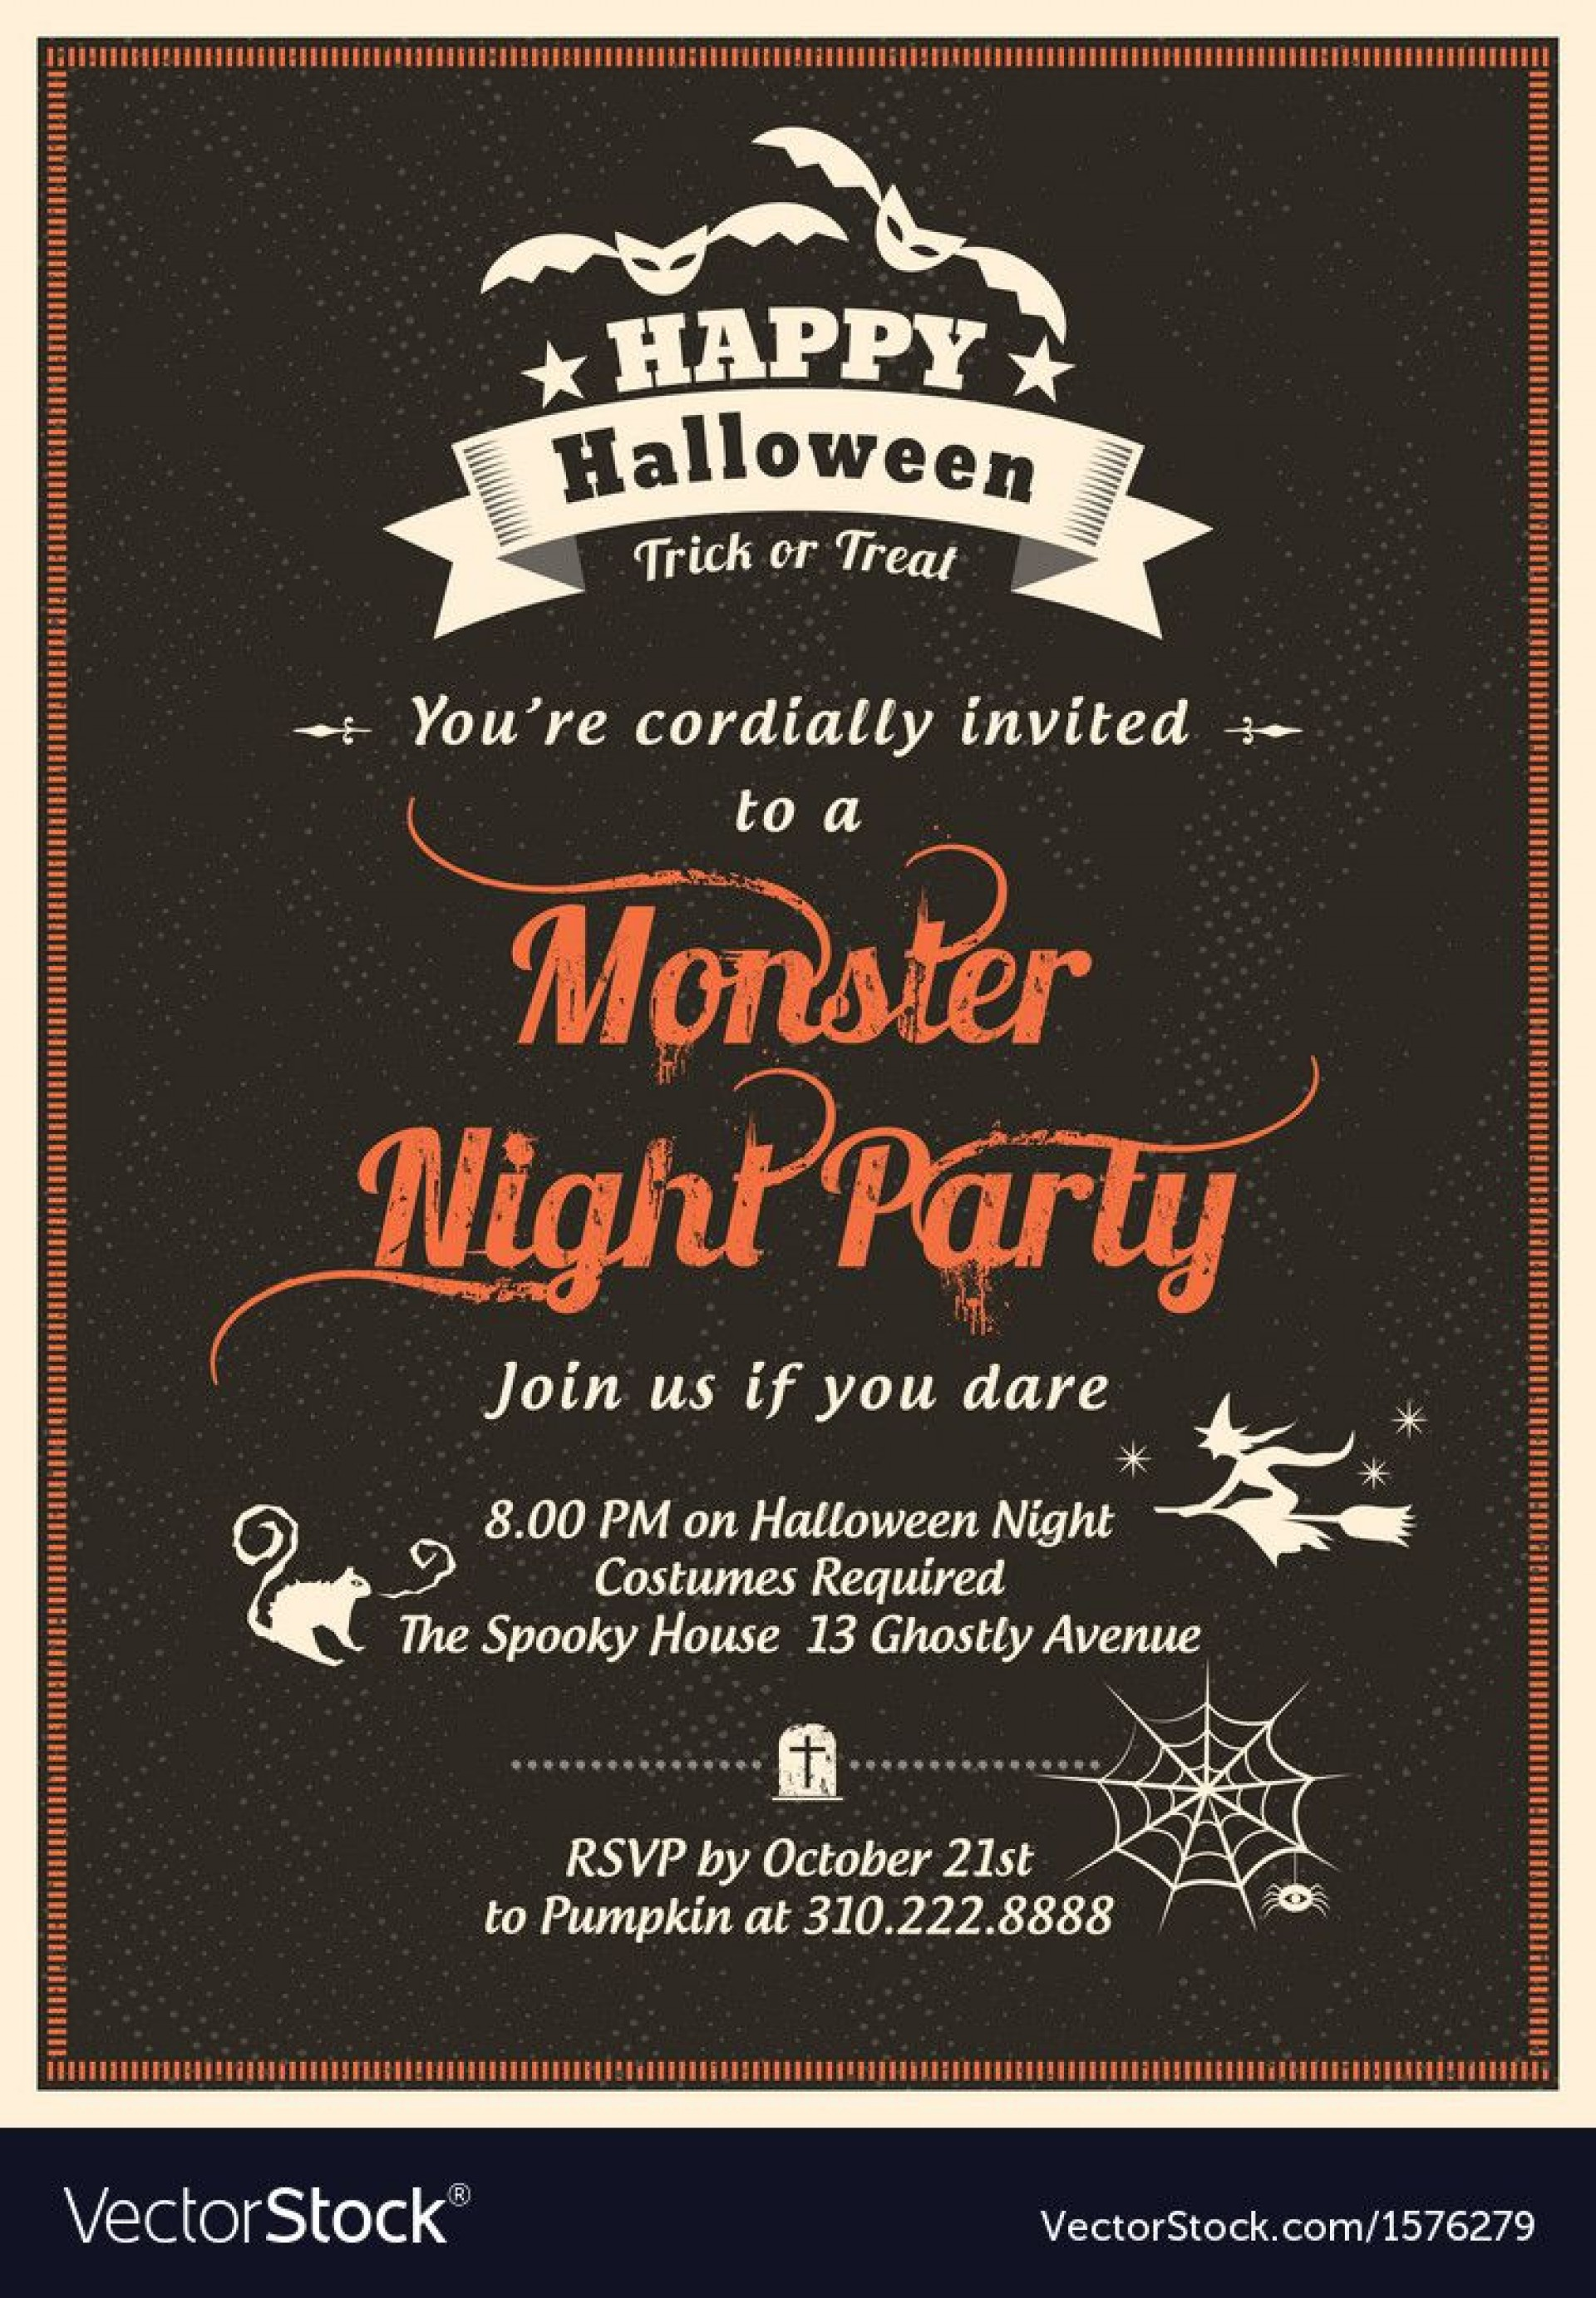 010 Staggering Halloween Party Invitation Template Inspiration  Microsoft Block October1920